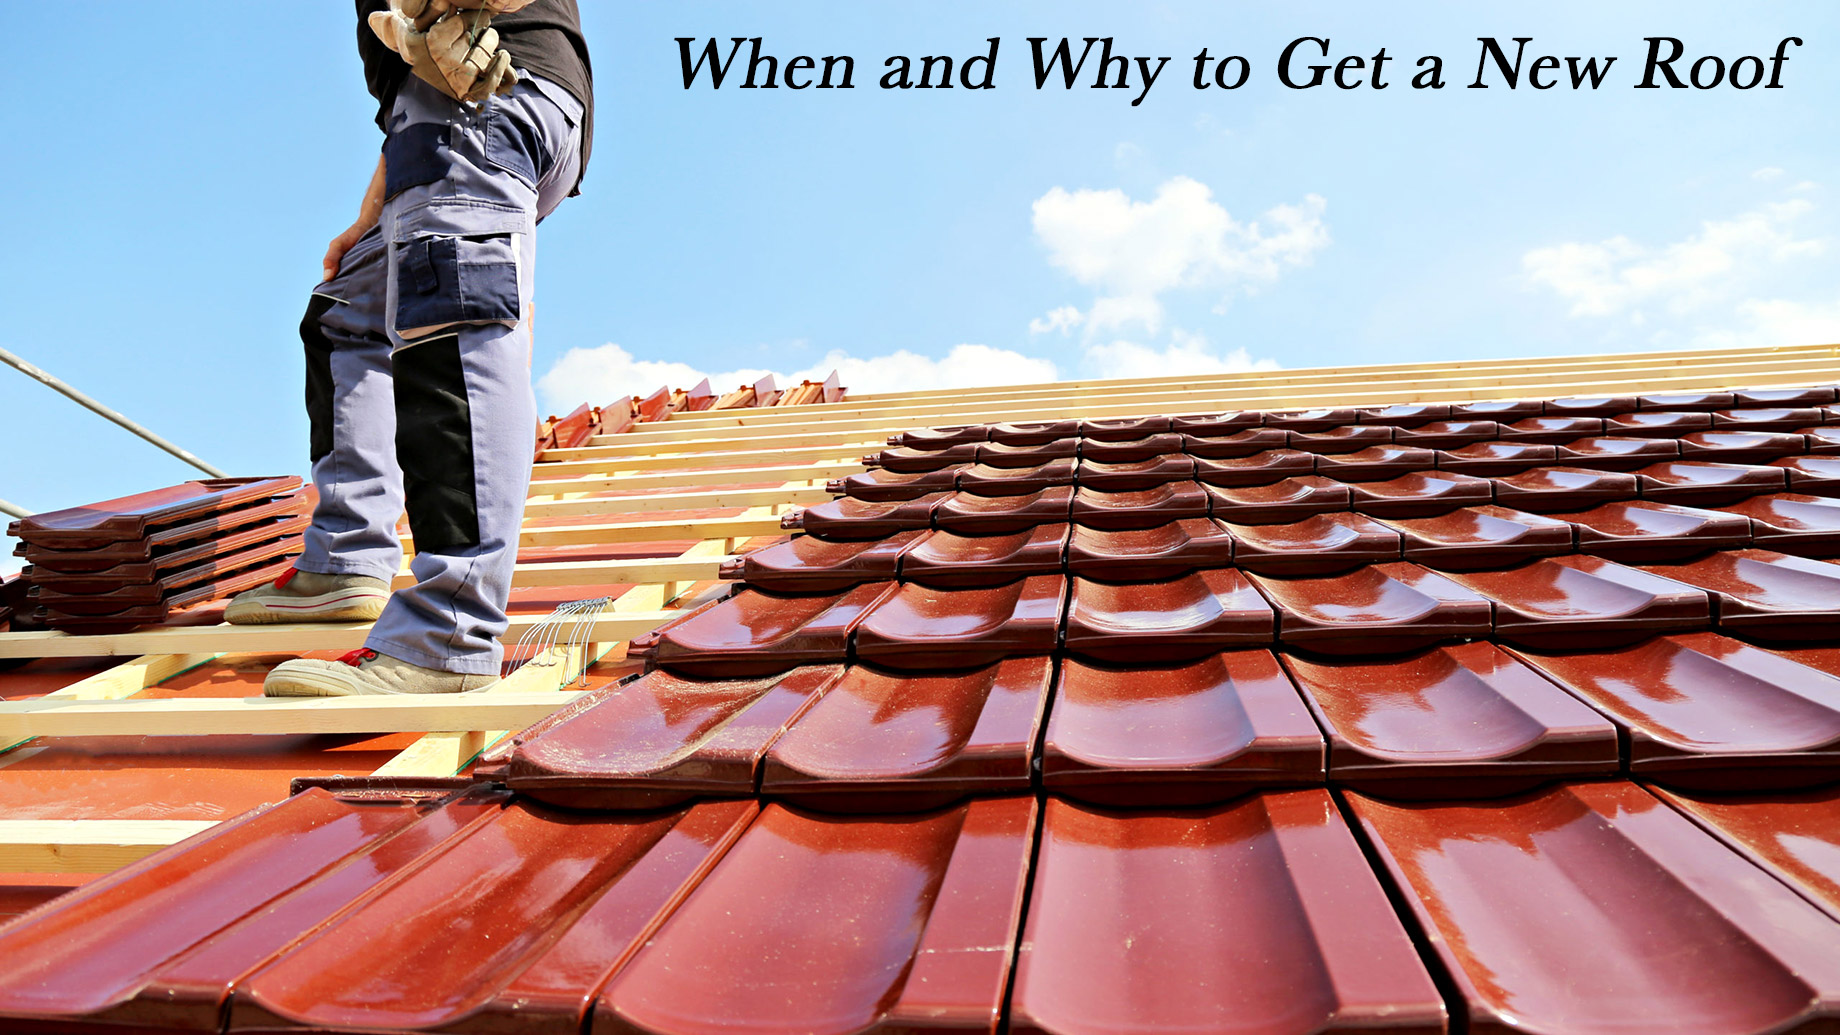 When and Why to Get a New Roof - 5 Things to Look For